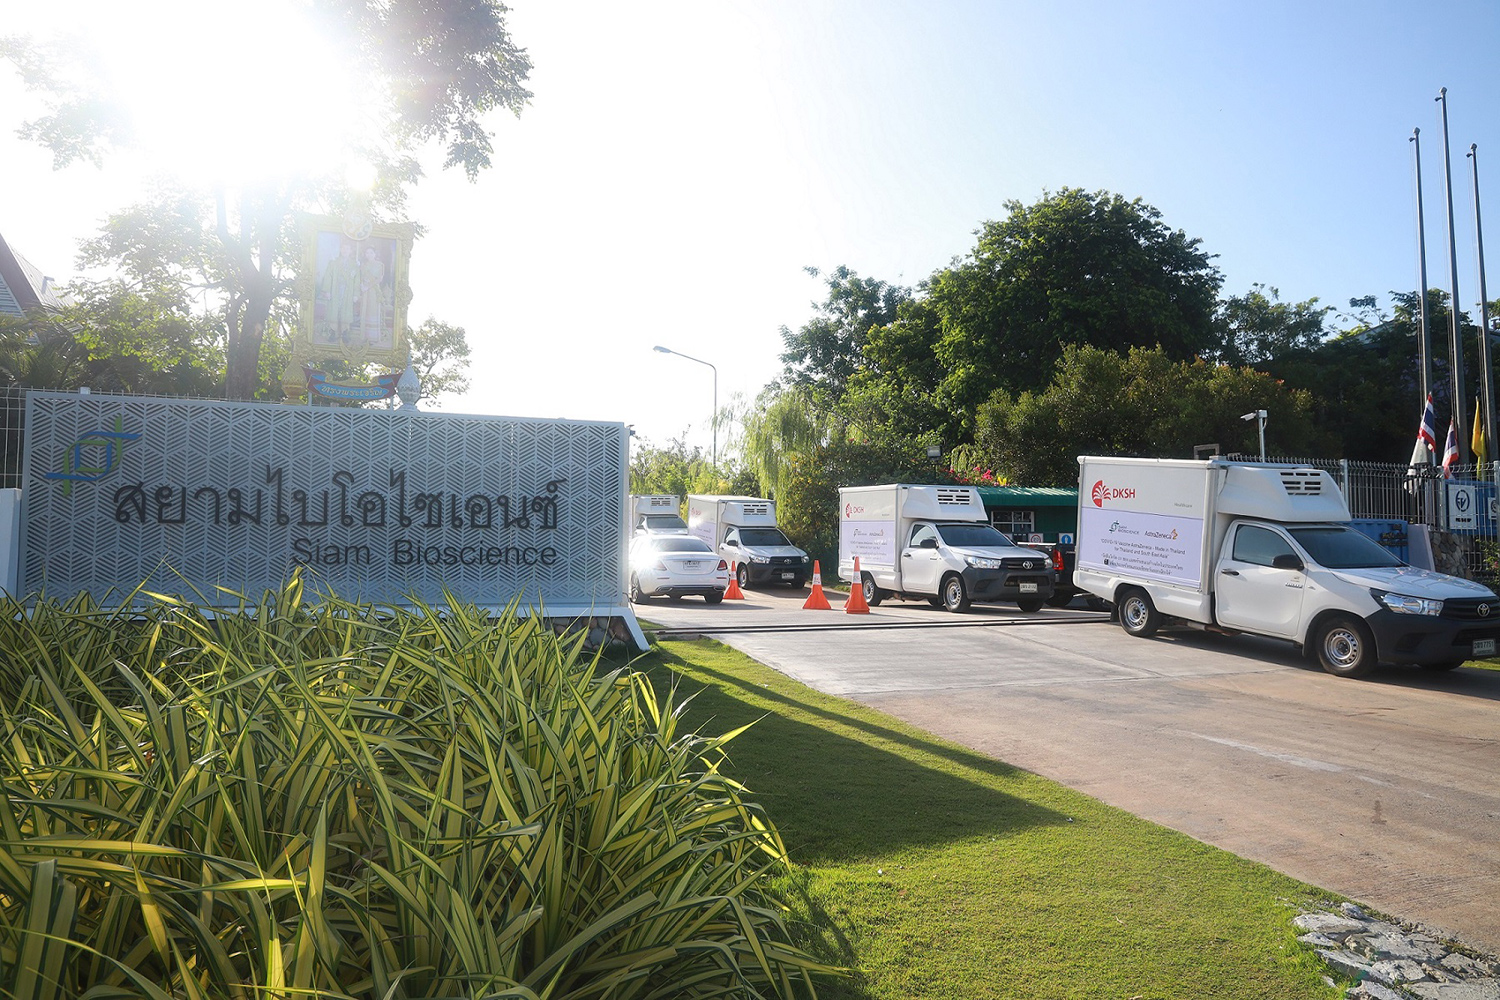 Delivery trucks leave the Siam Bioscience factory in Nonthaburi's Bang Yai district. The company said it will begin supplying the government with its Covid-19 vaccine this week. (Photo: AstraZeneca/Siam Bioscience)